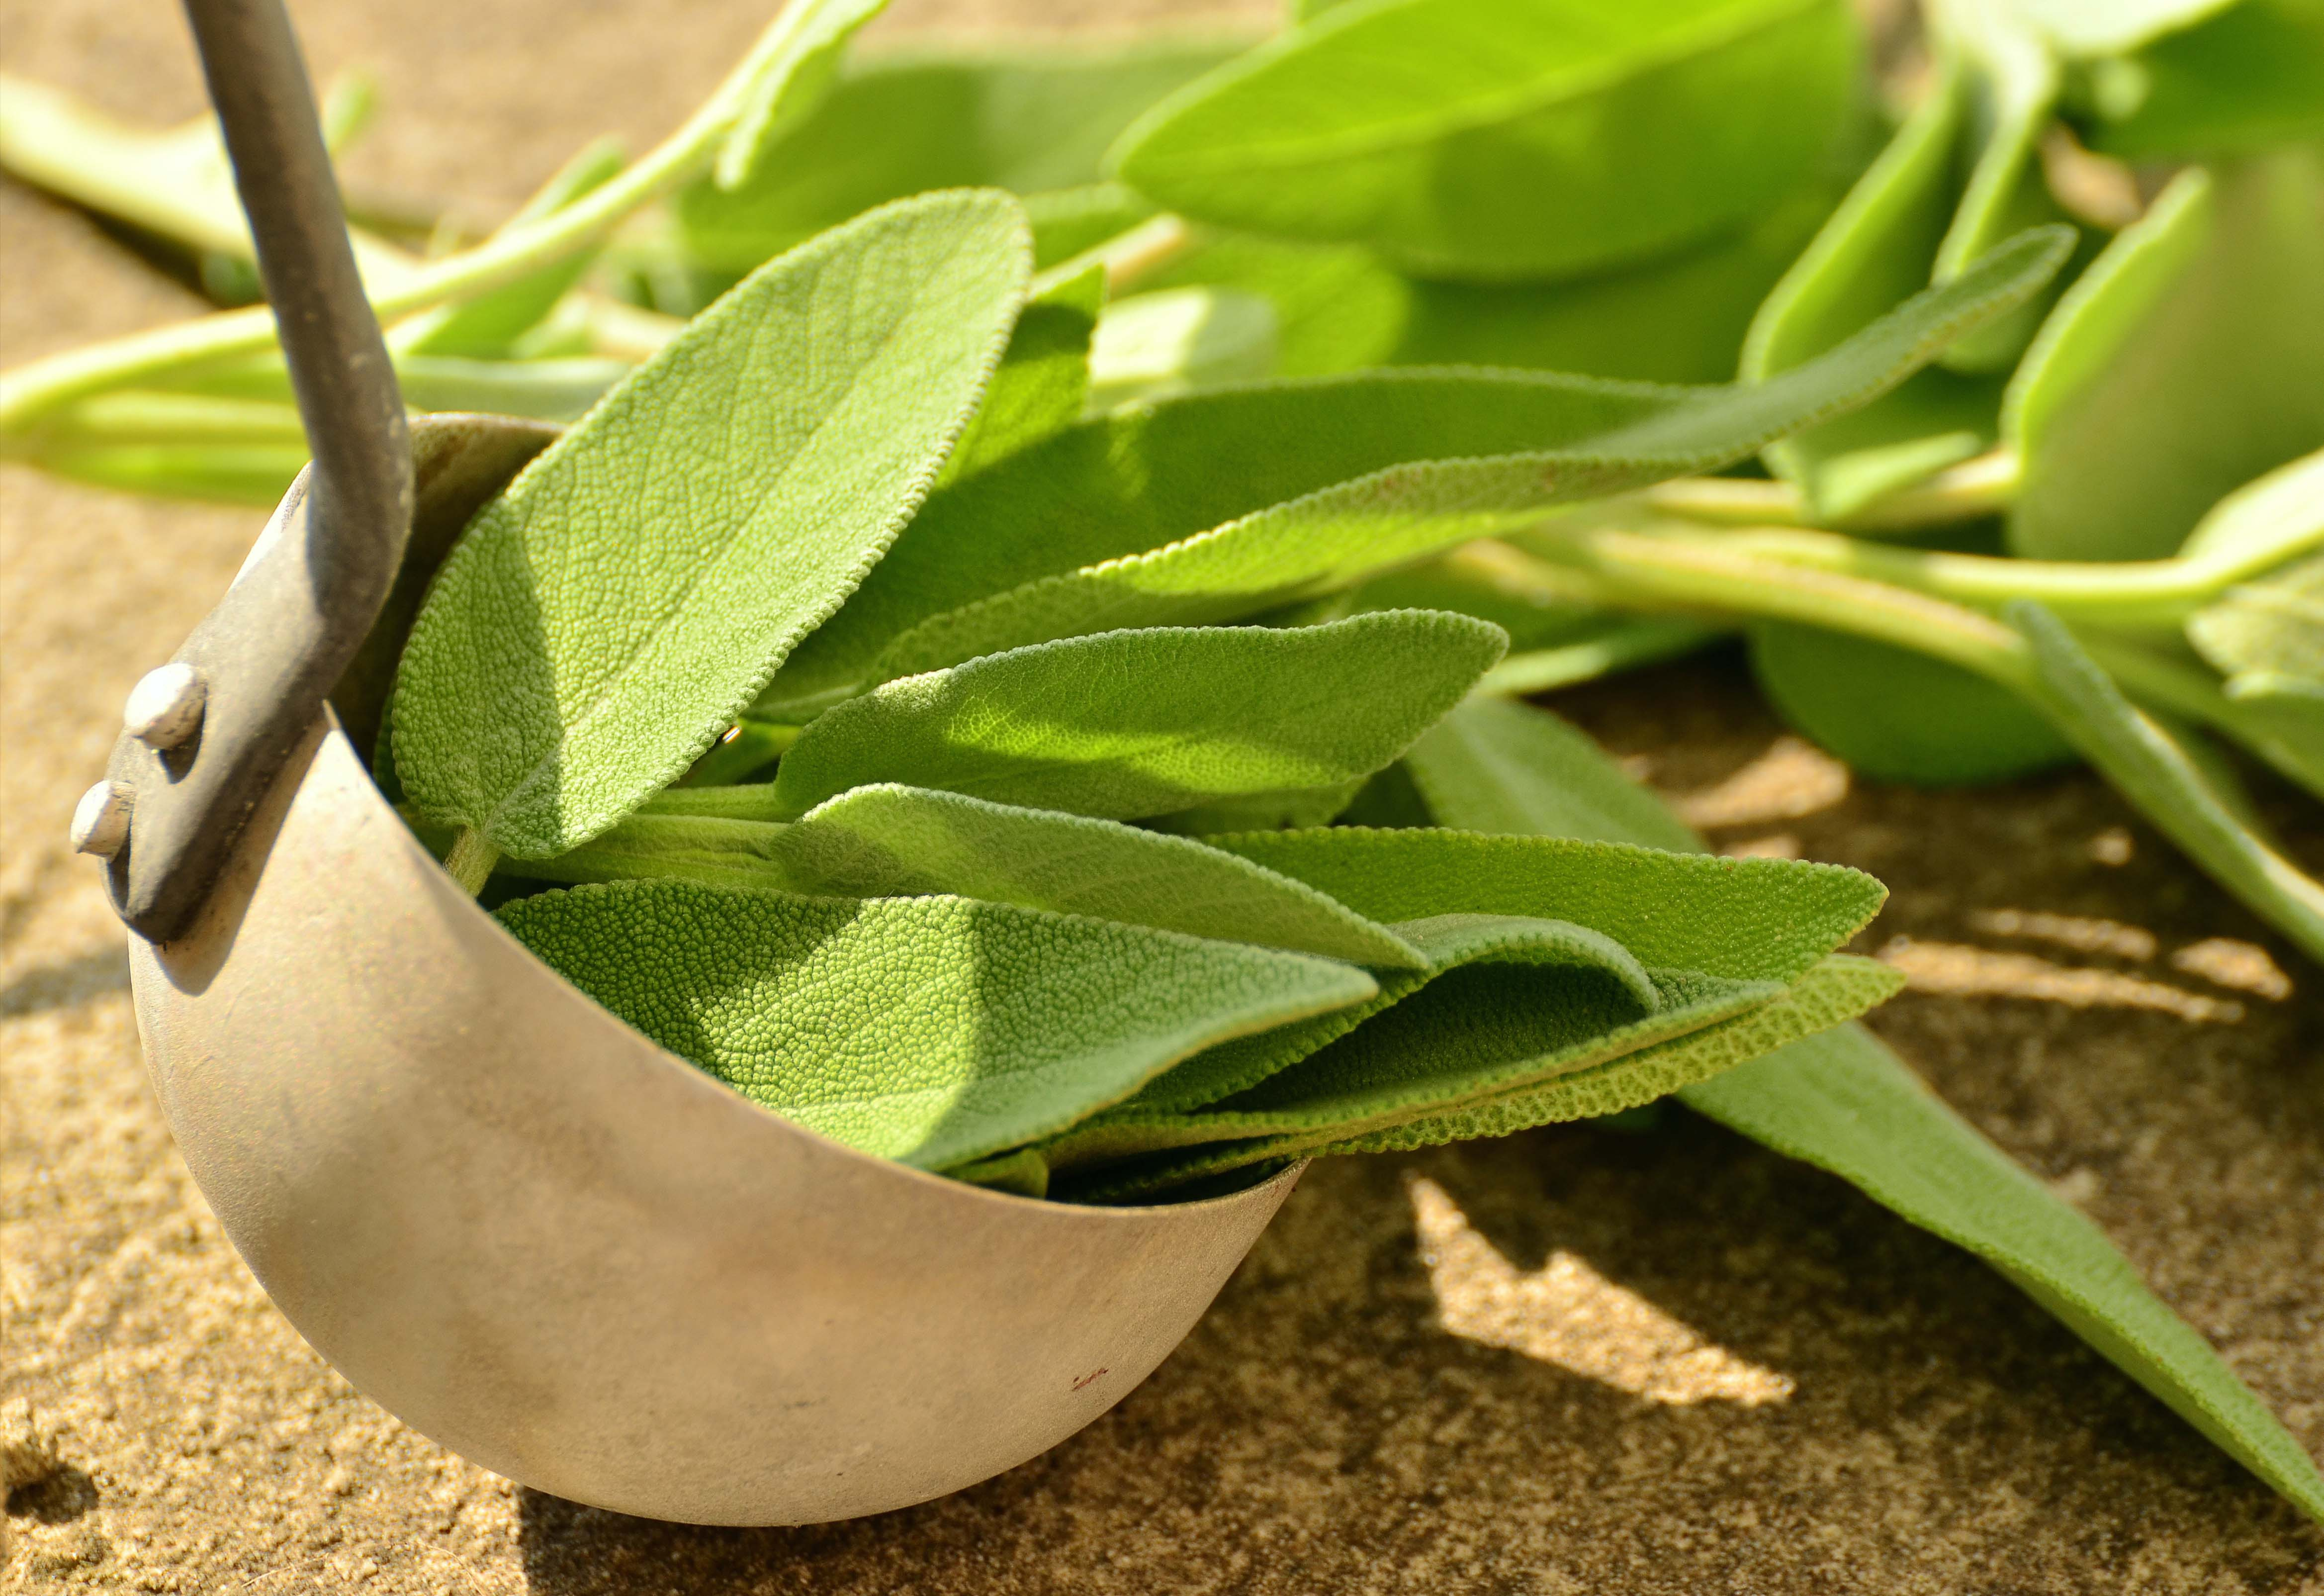 Best quality natural essential oils including Sage Oil - Reconstitution Sage and other fragrance & perfume oils at the most discount rates by BMV Fragrances in UP, India.